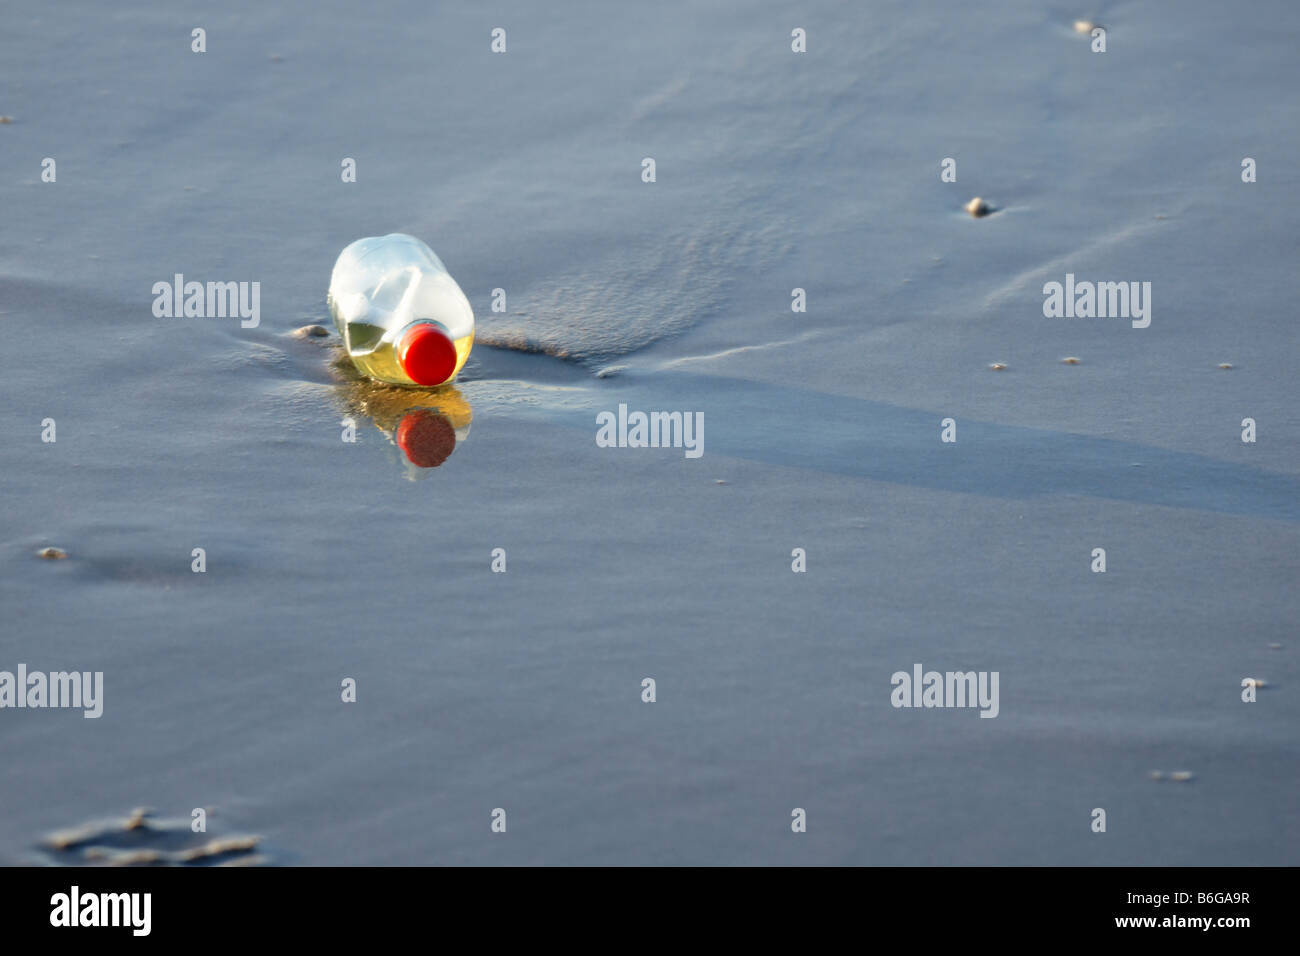 One plastic bottle detail abandoned lying in shallow sea water alone - Stock Image